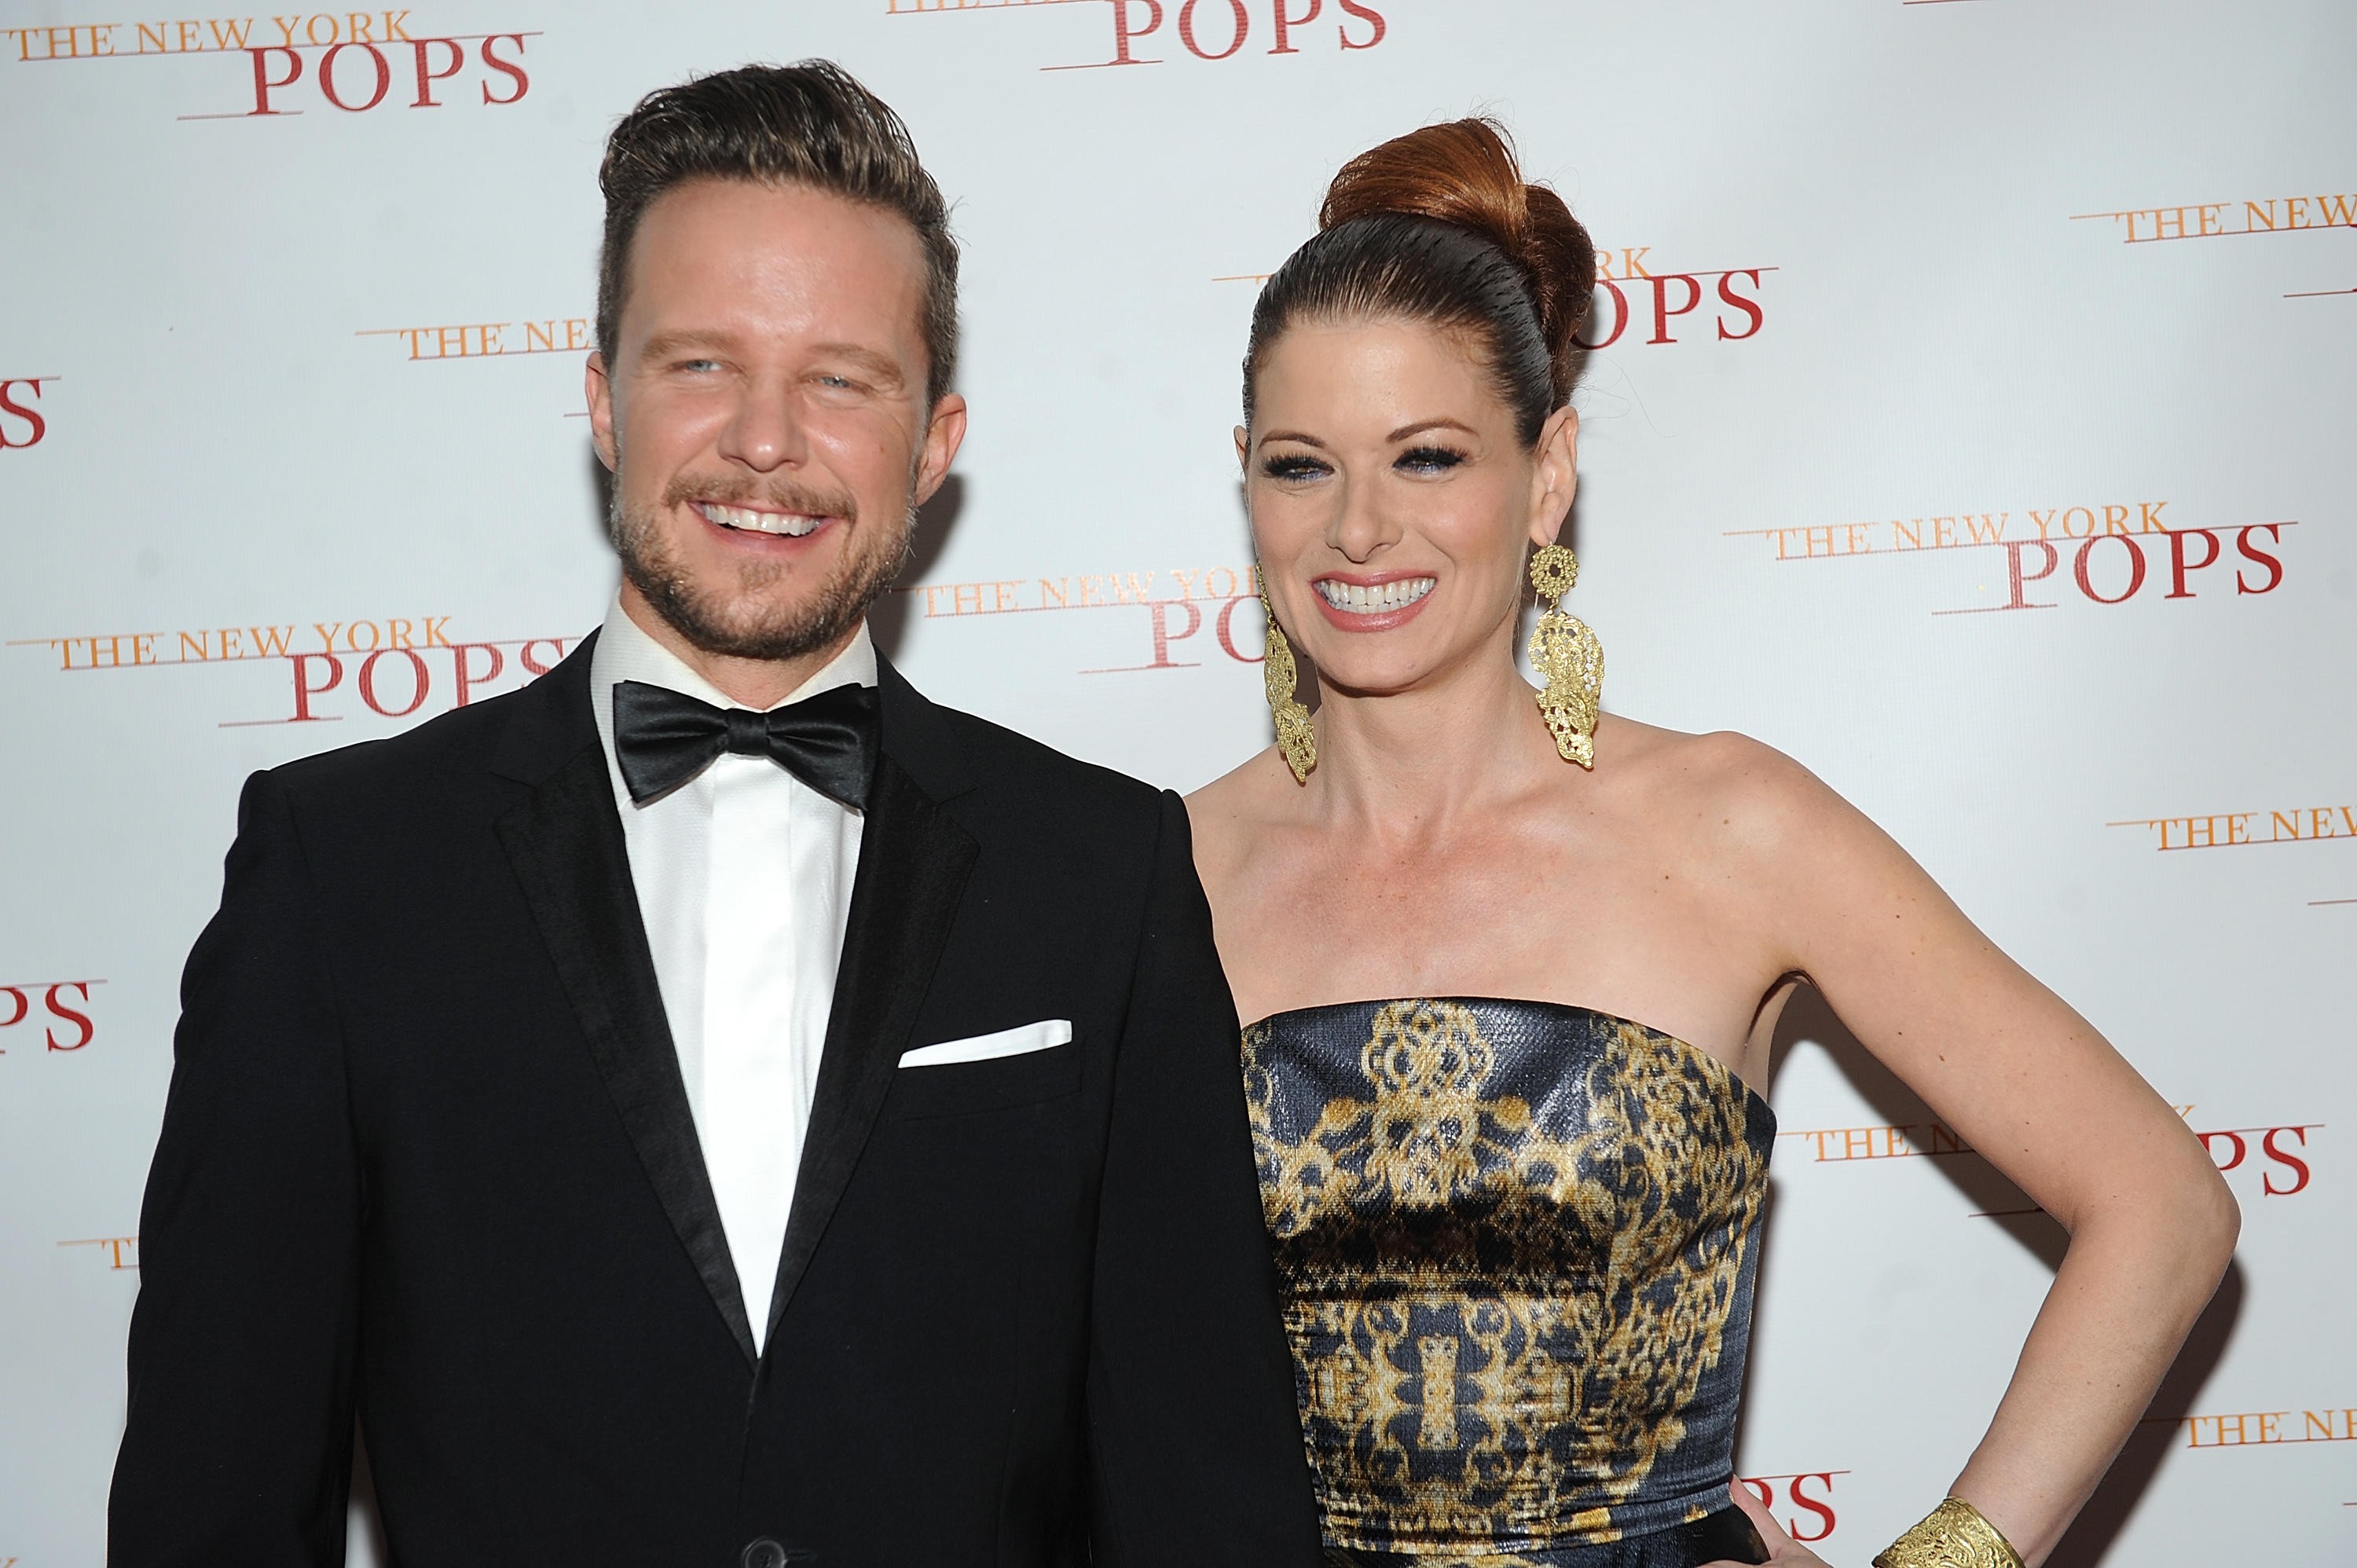 Debra Messing and her former boyfriend Will Chase